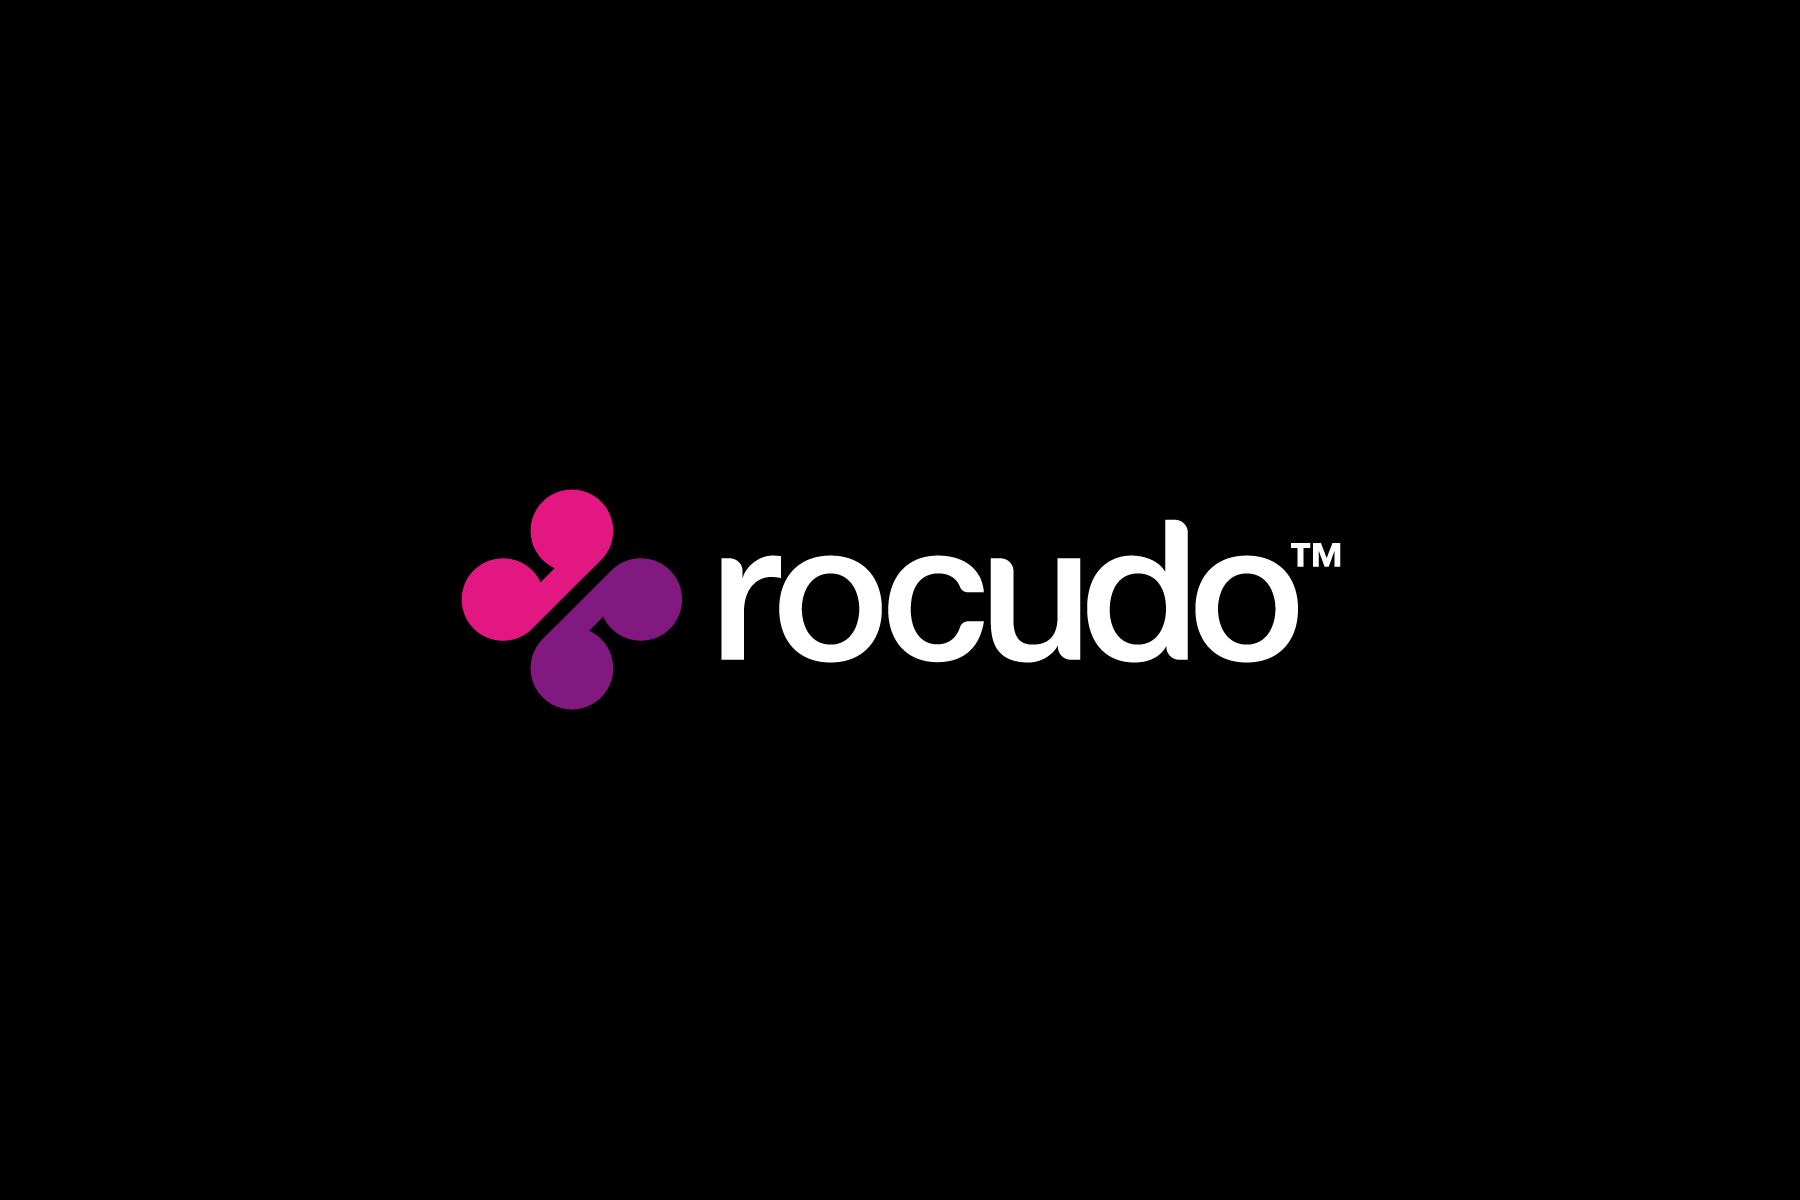 The final chosen symbol for Rocudo is inspired by an old reel to reel device, which hints at the remixing nature of the software platform.